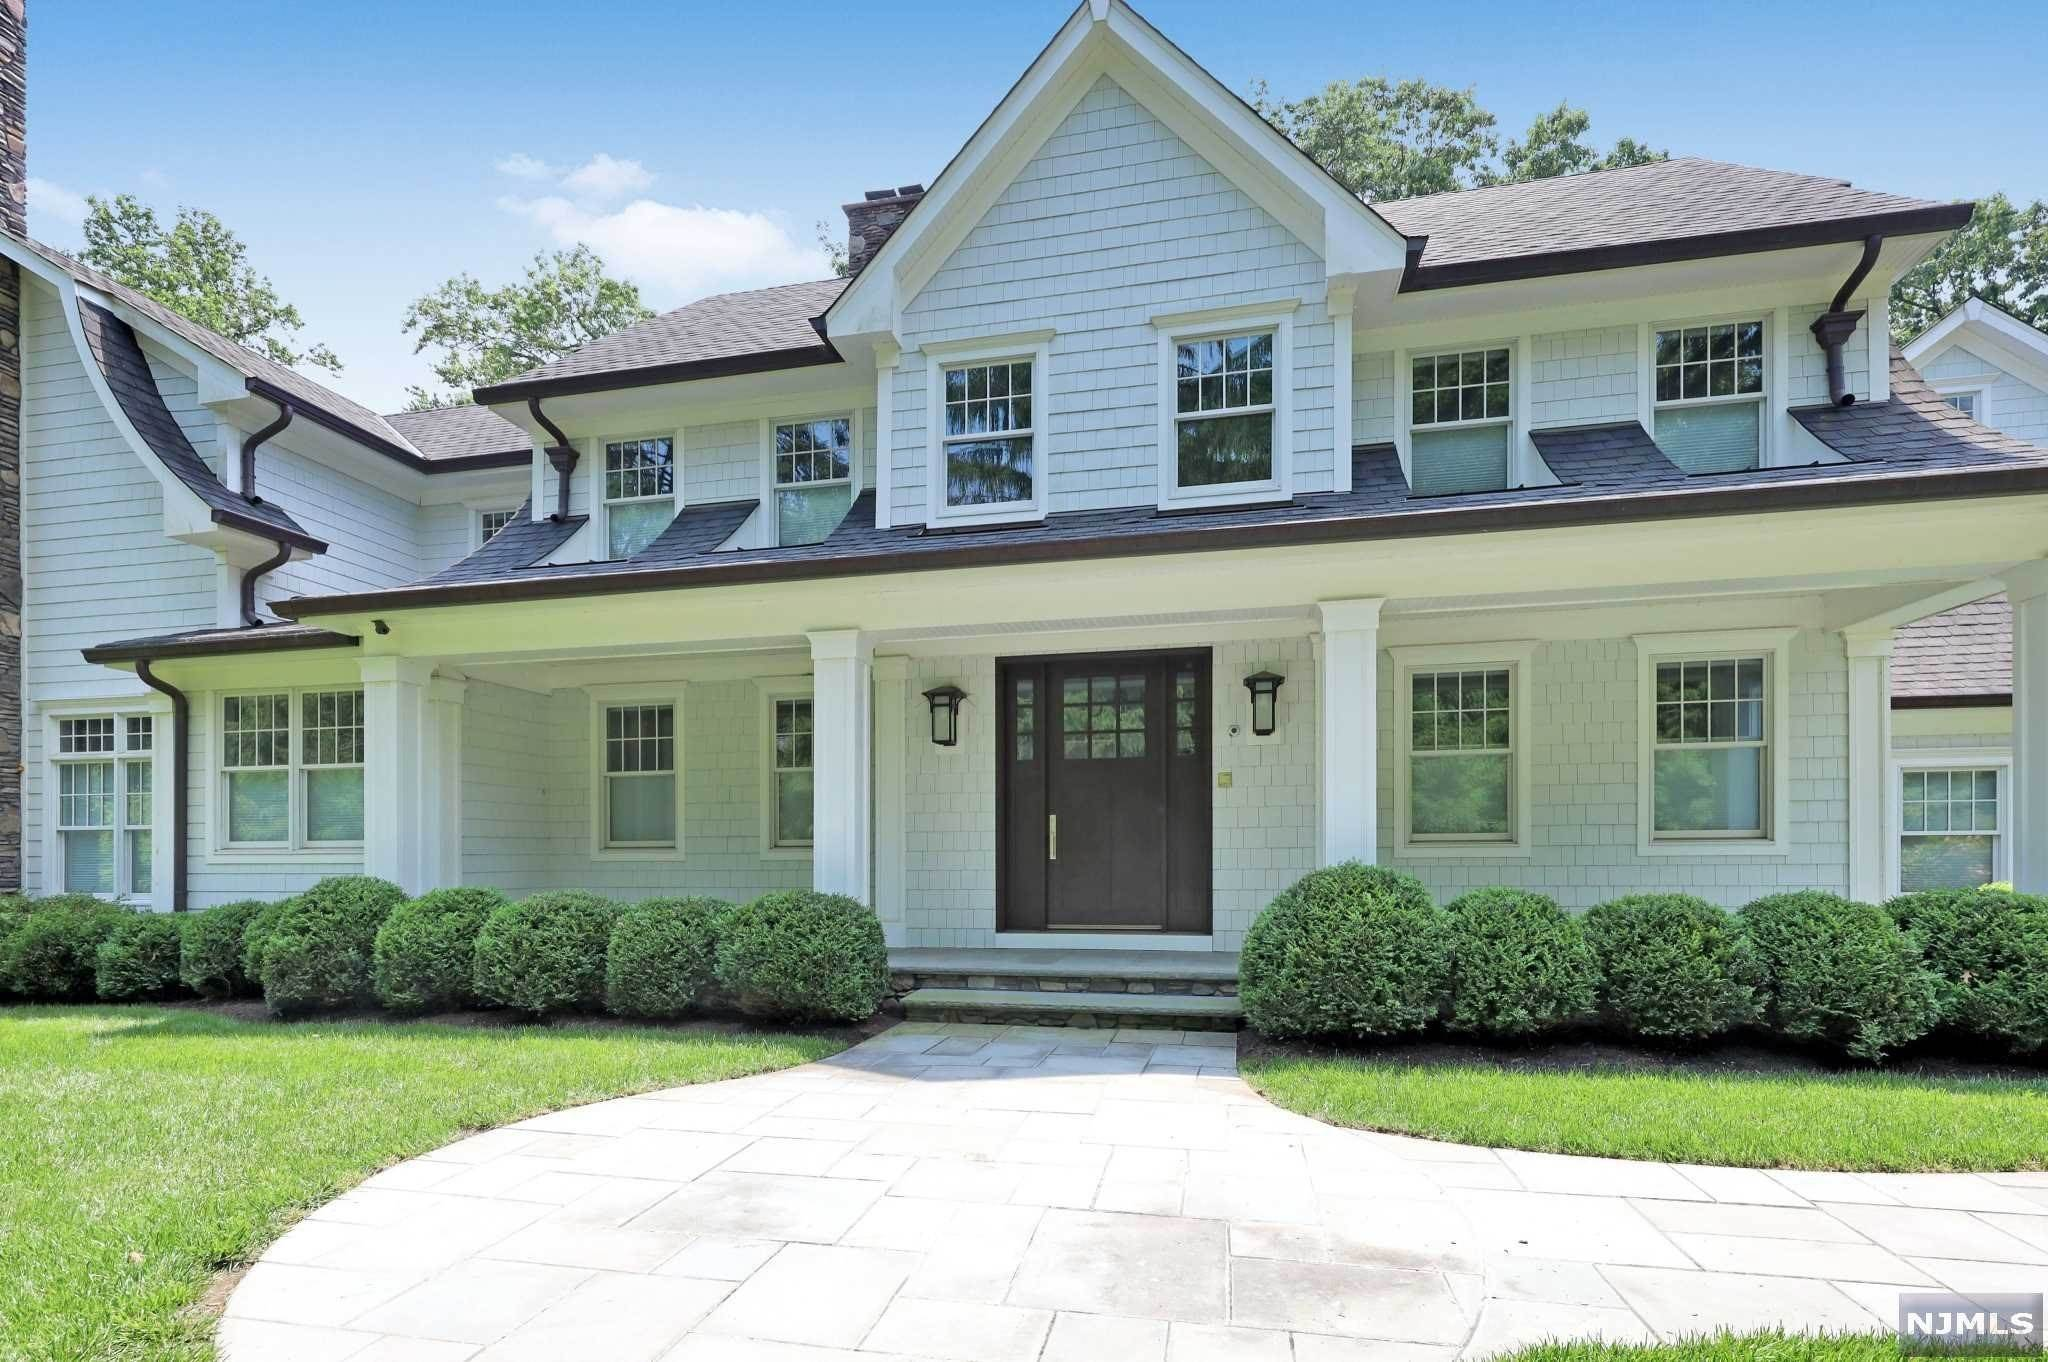 Single Family Home for Sale at 50 Riverview Terrace Upper Saddle River, New Jersey,07458 United States